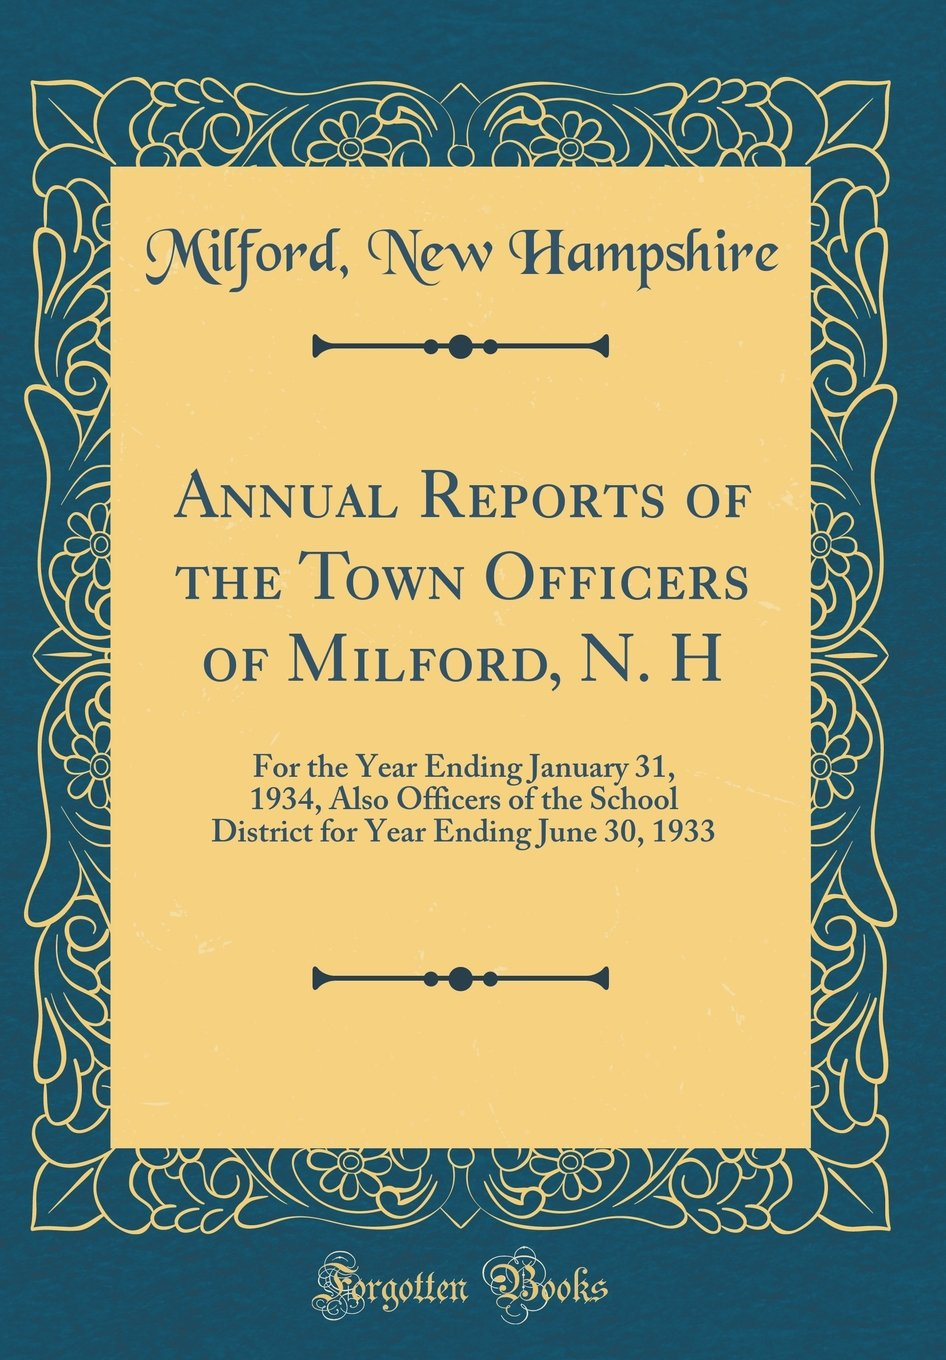 Annual Reports of the Town Officers of Milford, N. H: For the Year Ending January 31, 1934, Also Officers of the School District for Year Ending June 30, 1933 (Classic Reprint) pdf